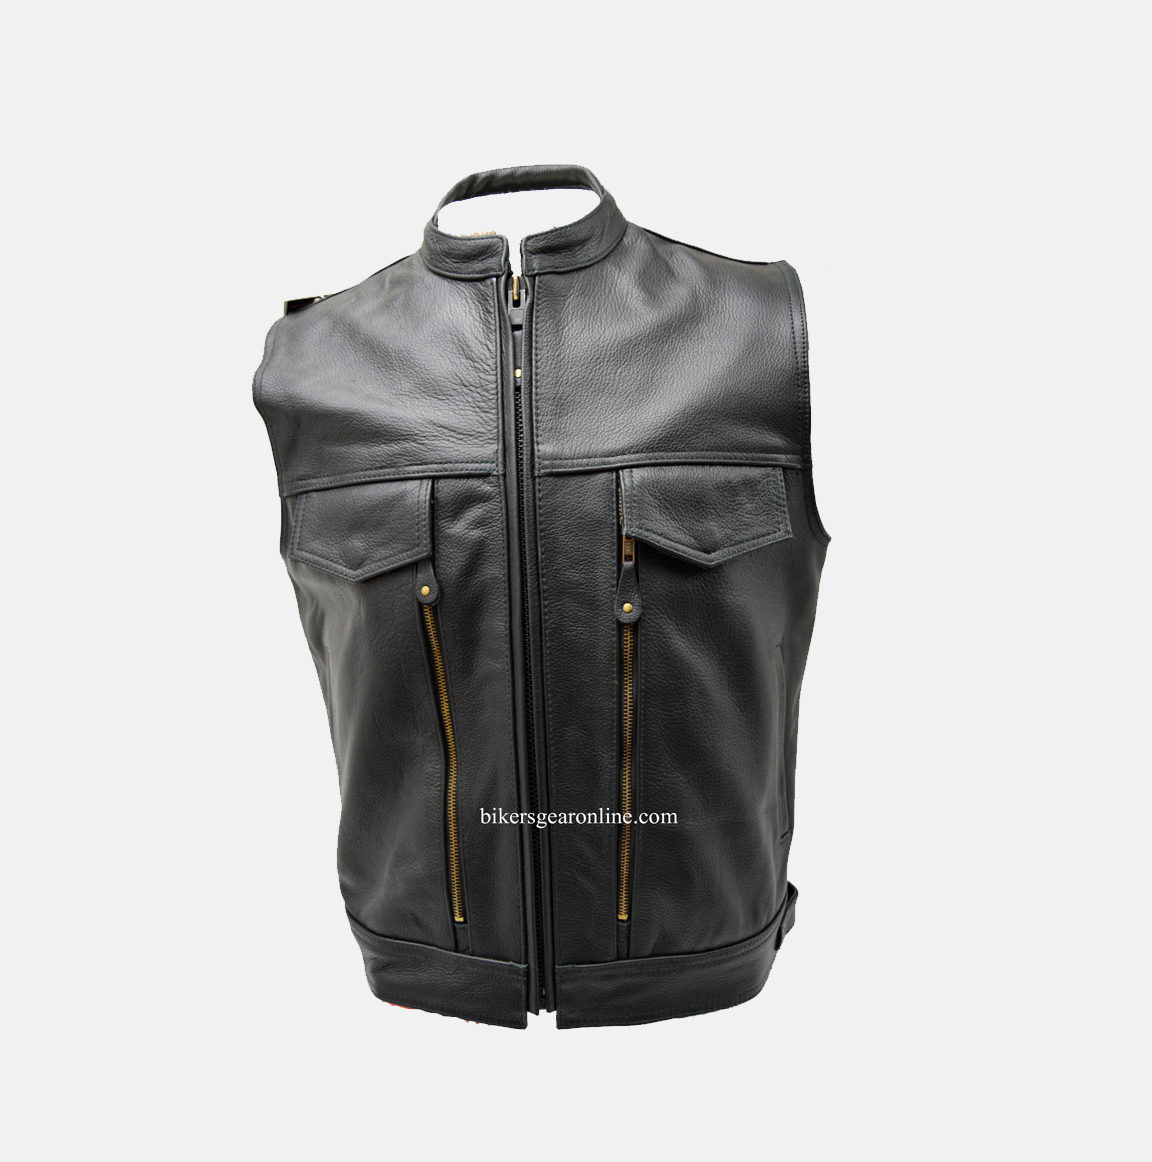 a36e418a3 Mens Motorcycle Vest Leather Made With Gun Pocket - Extreme Biker Wear